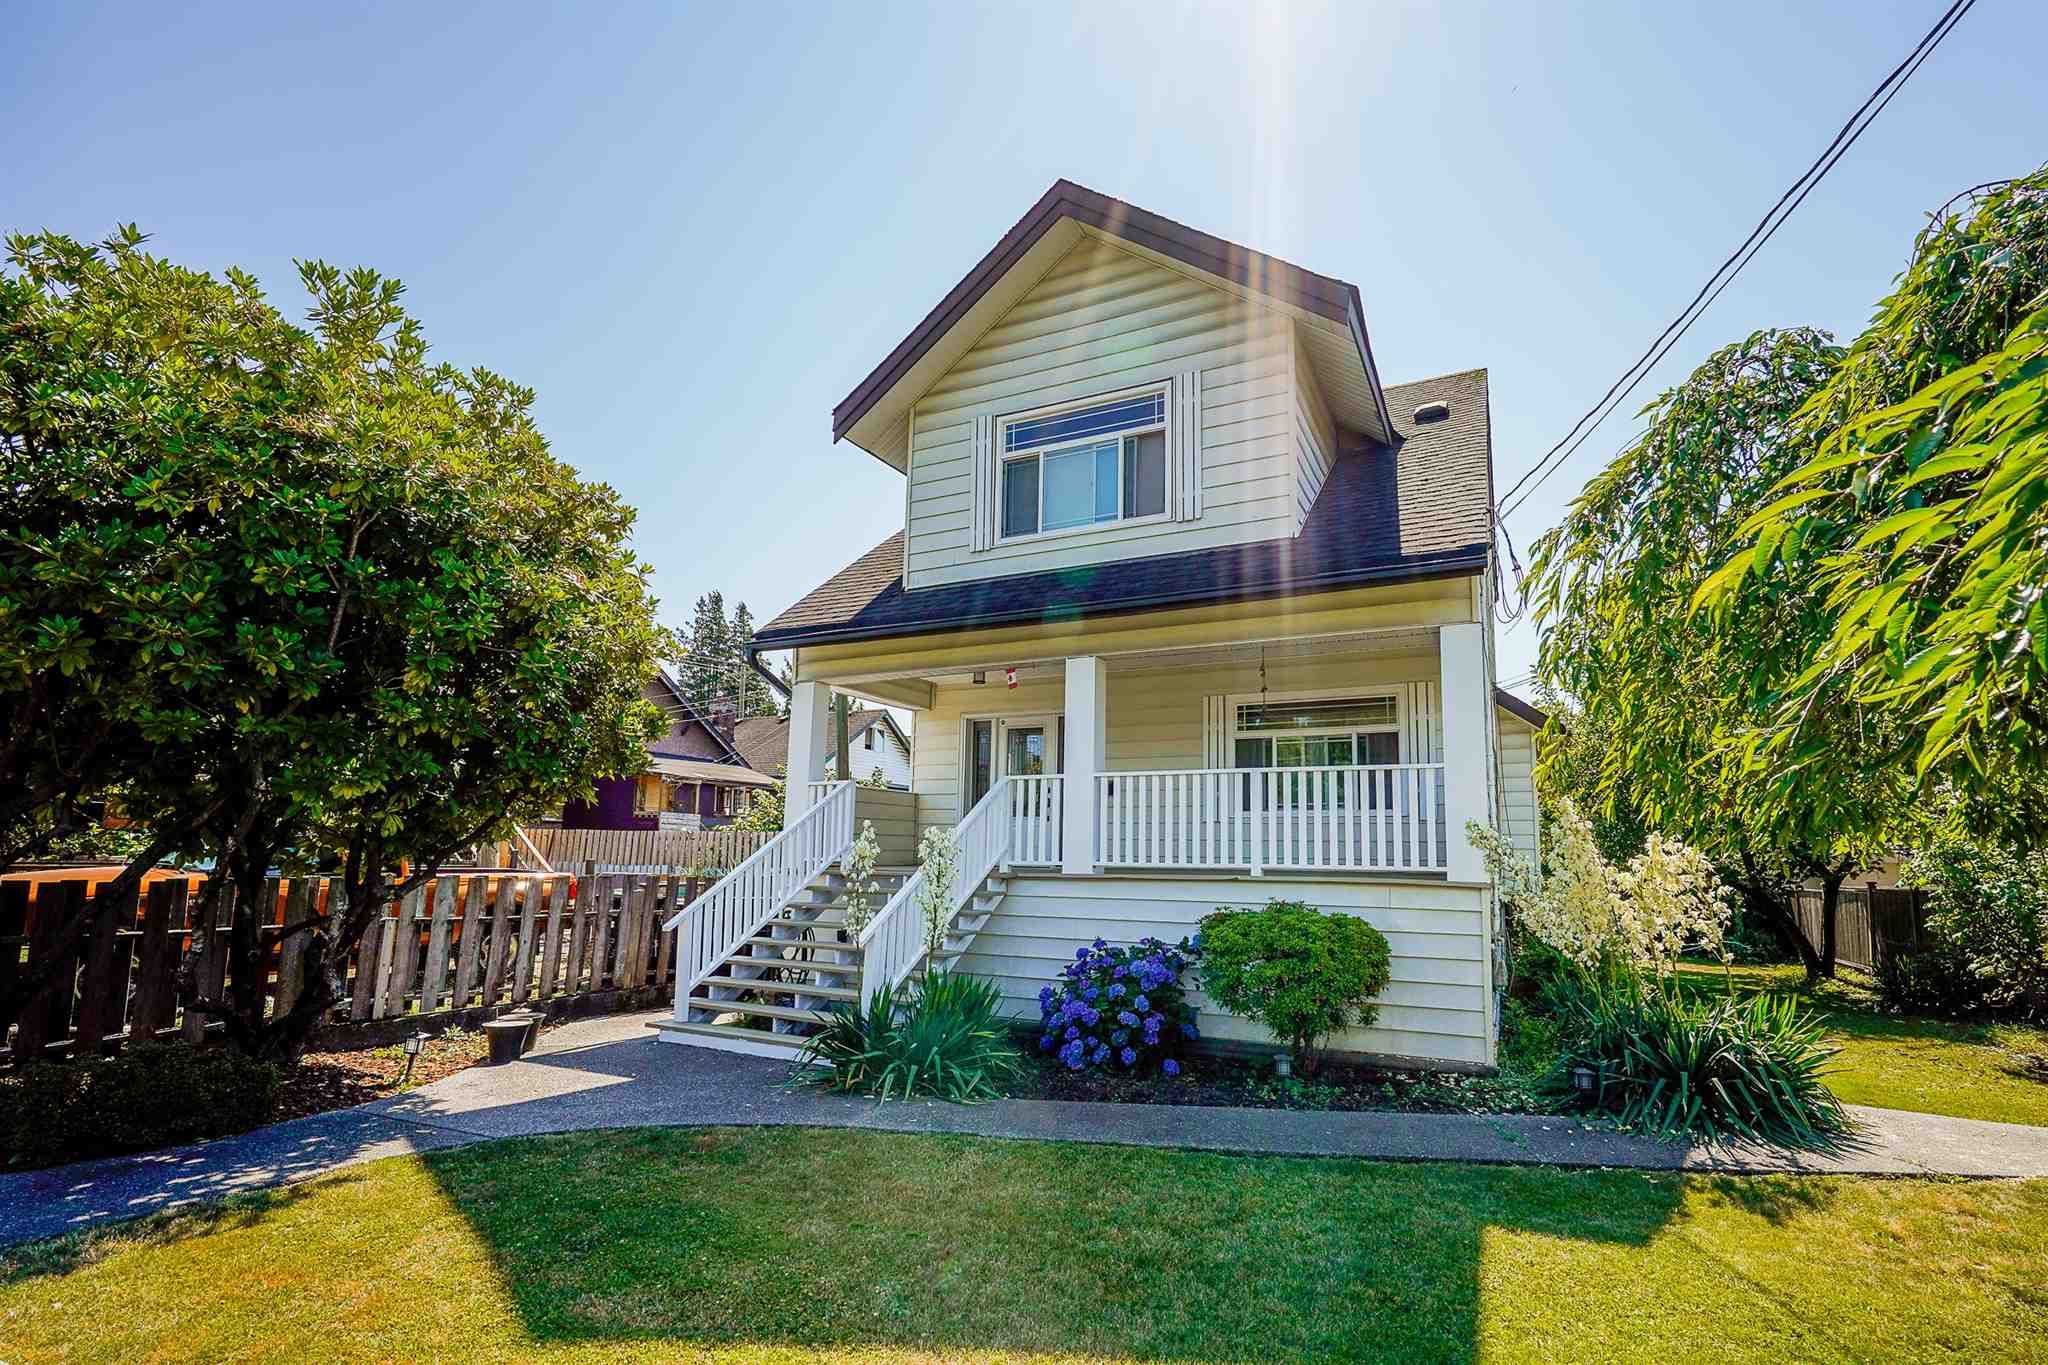 """Main Photo: 1004 DUBLIN Street in New Westminster: Moody Park House for sale in """"Moody Park"""" : MLS®# R2601230"""